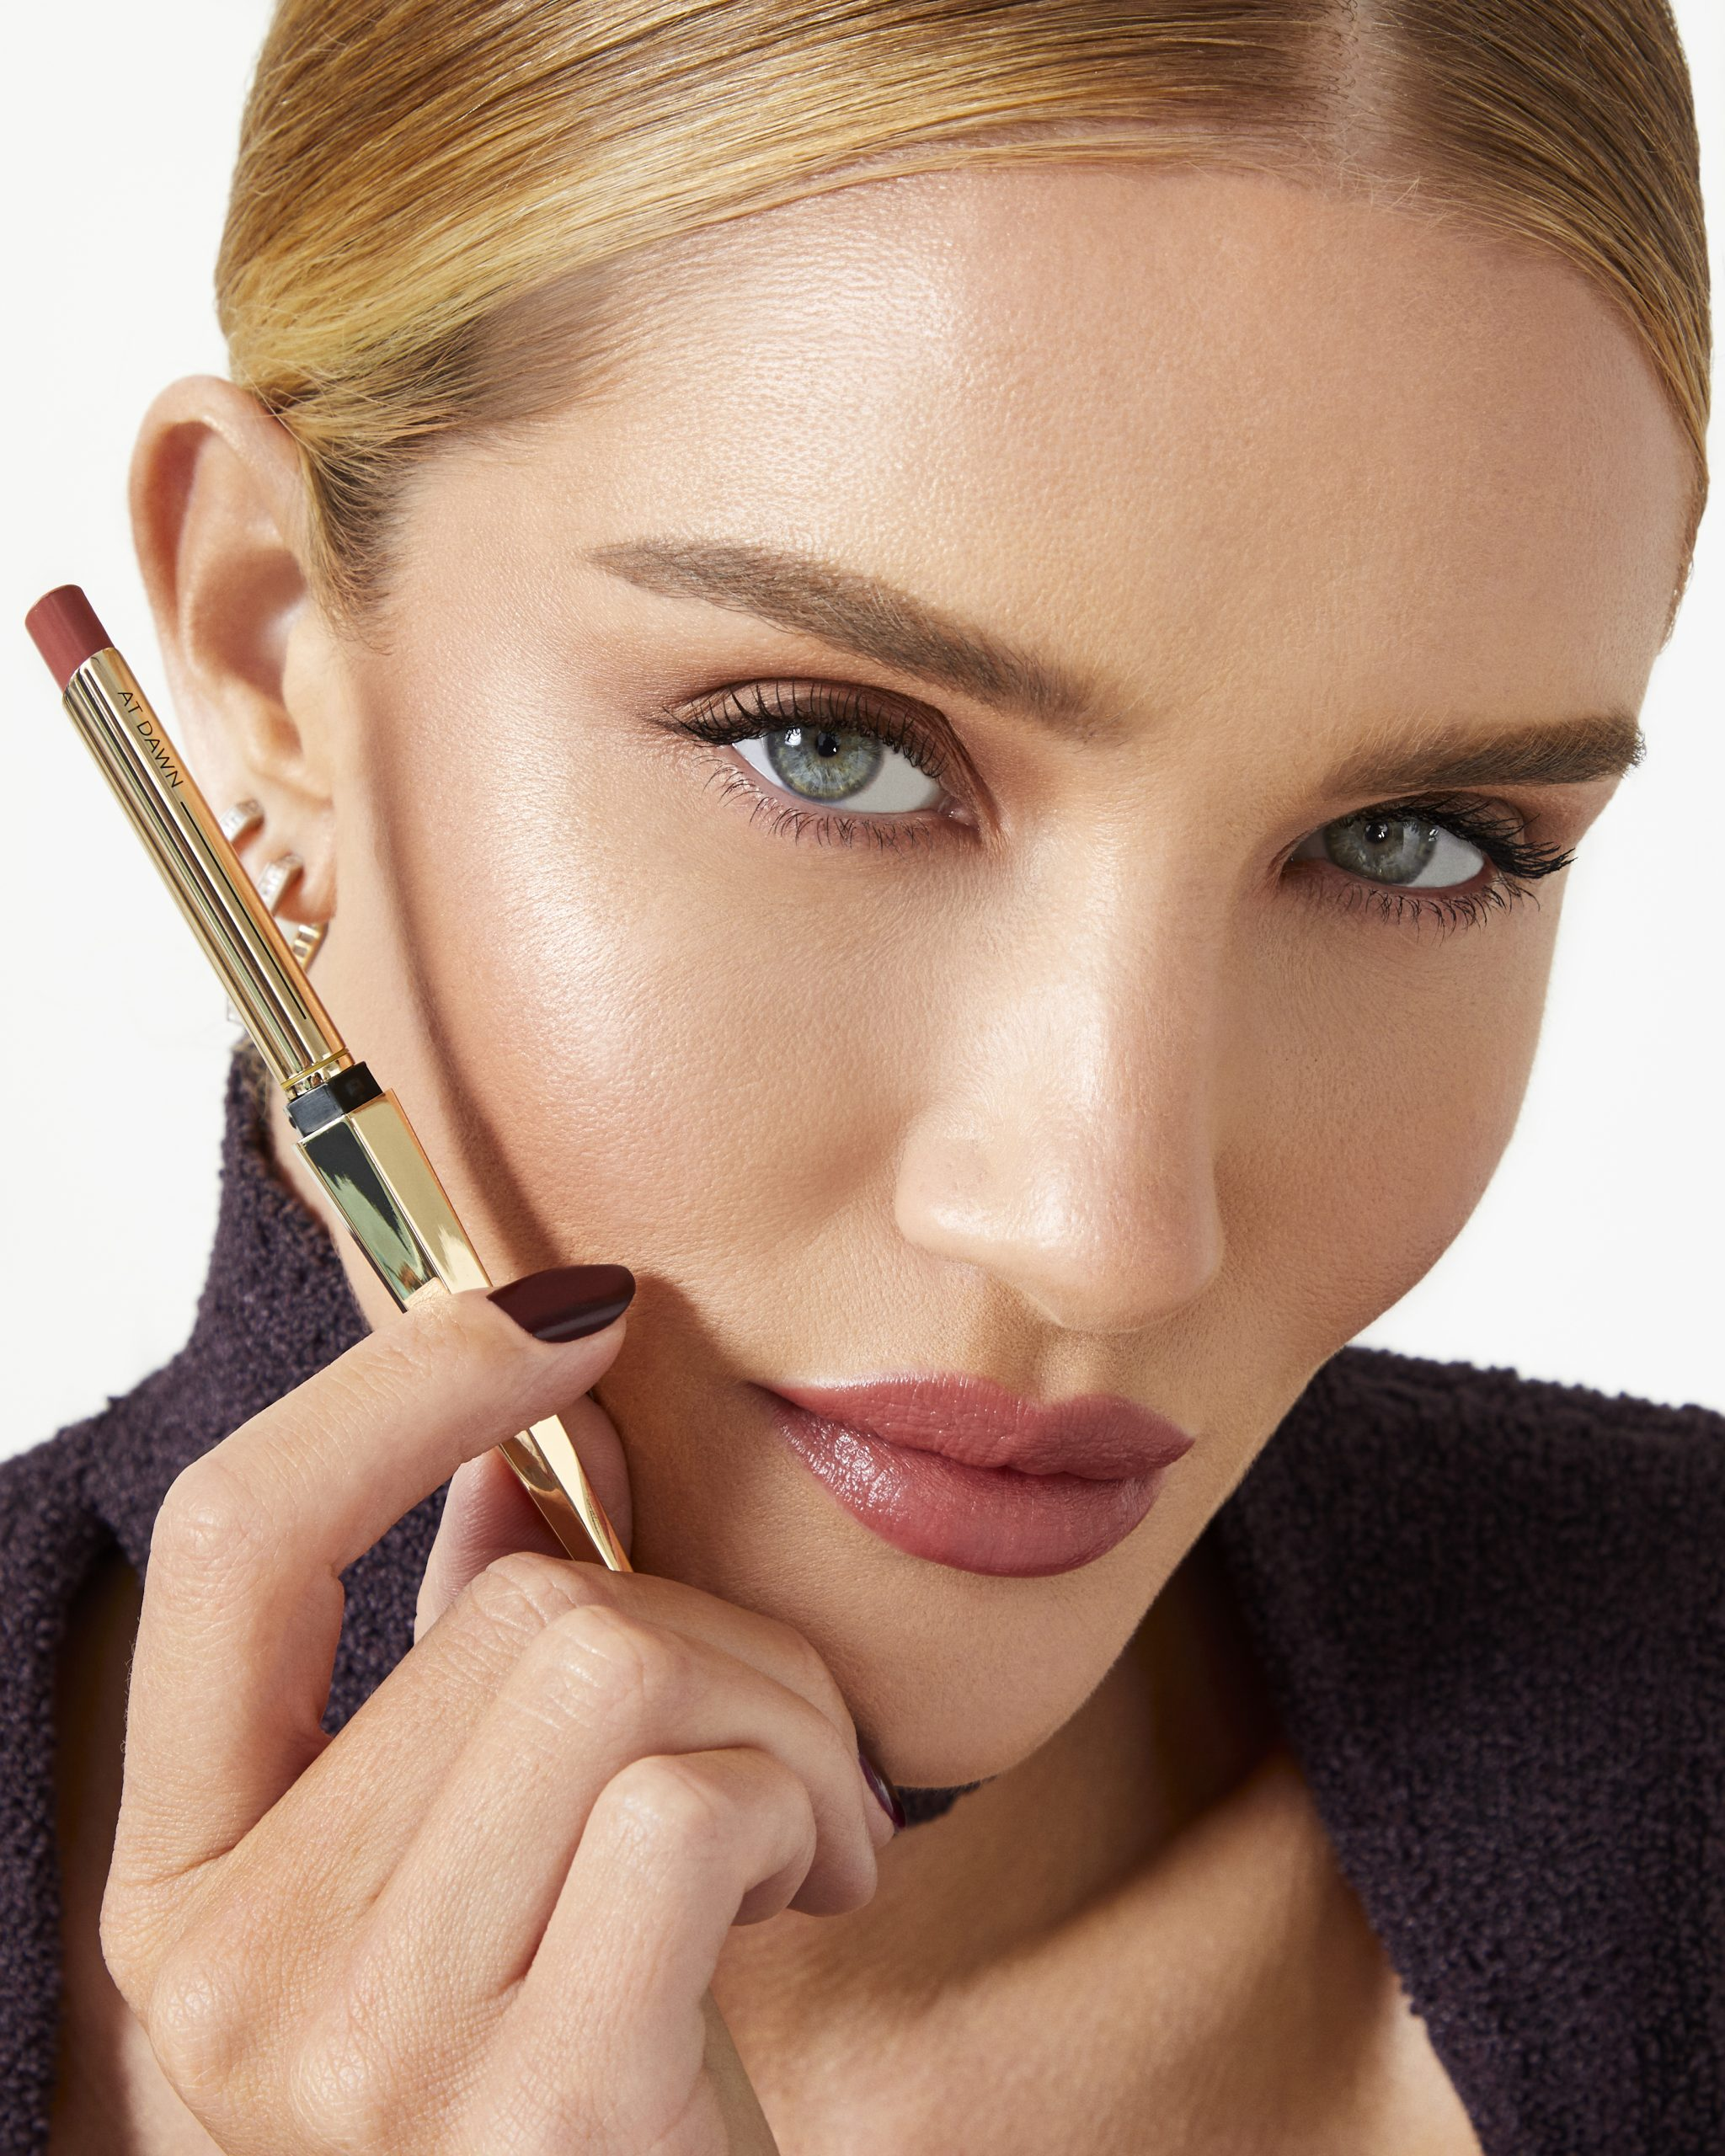 Confidence from within: Rosie Huntington-Whiteley on what beauty means to her